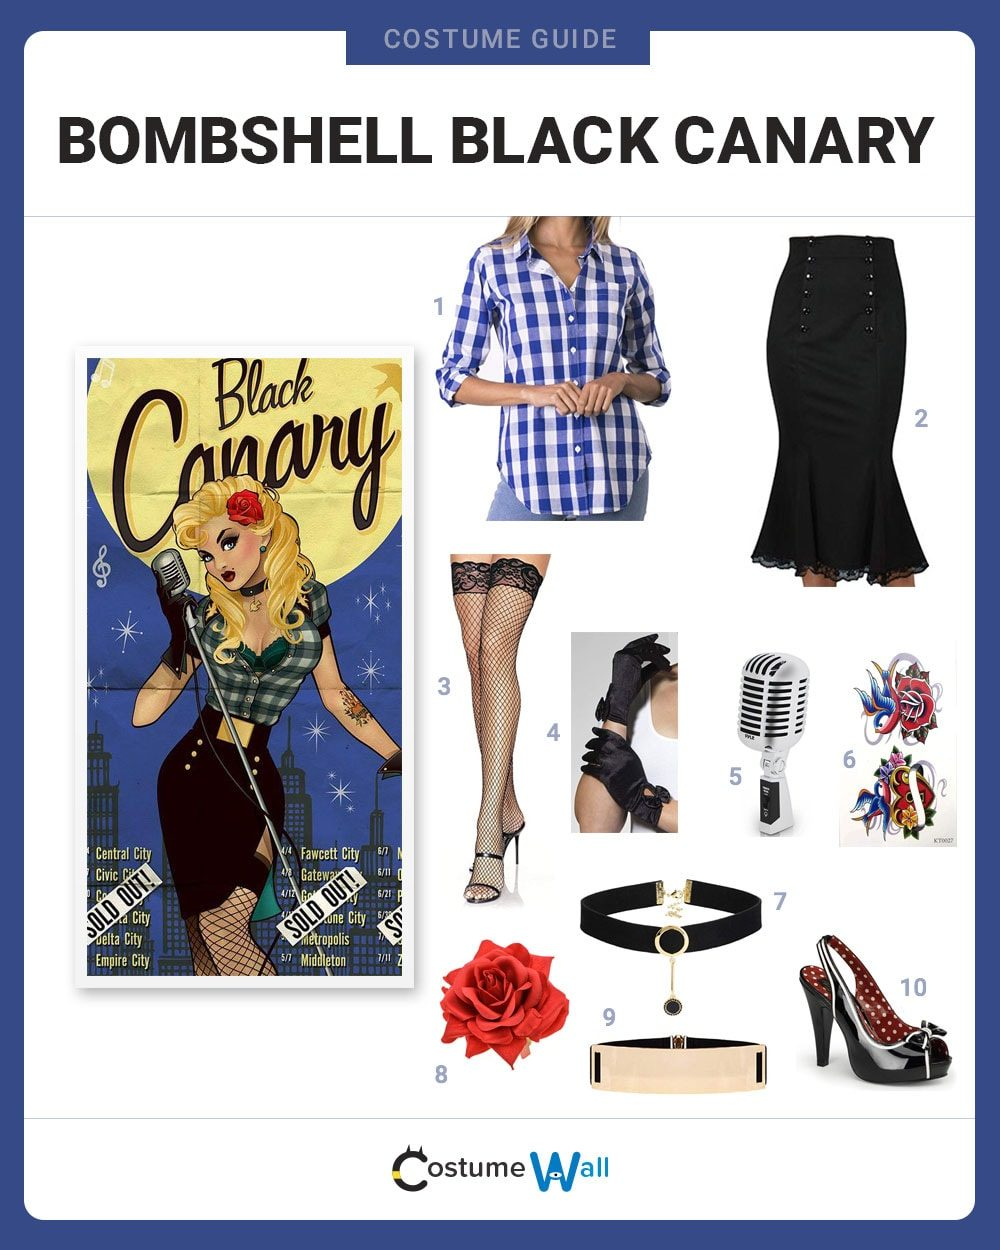 Bombshell Black Canary Costume Guide